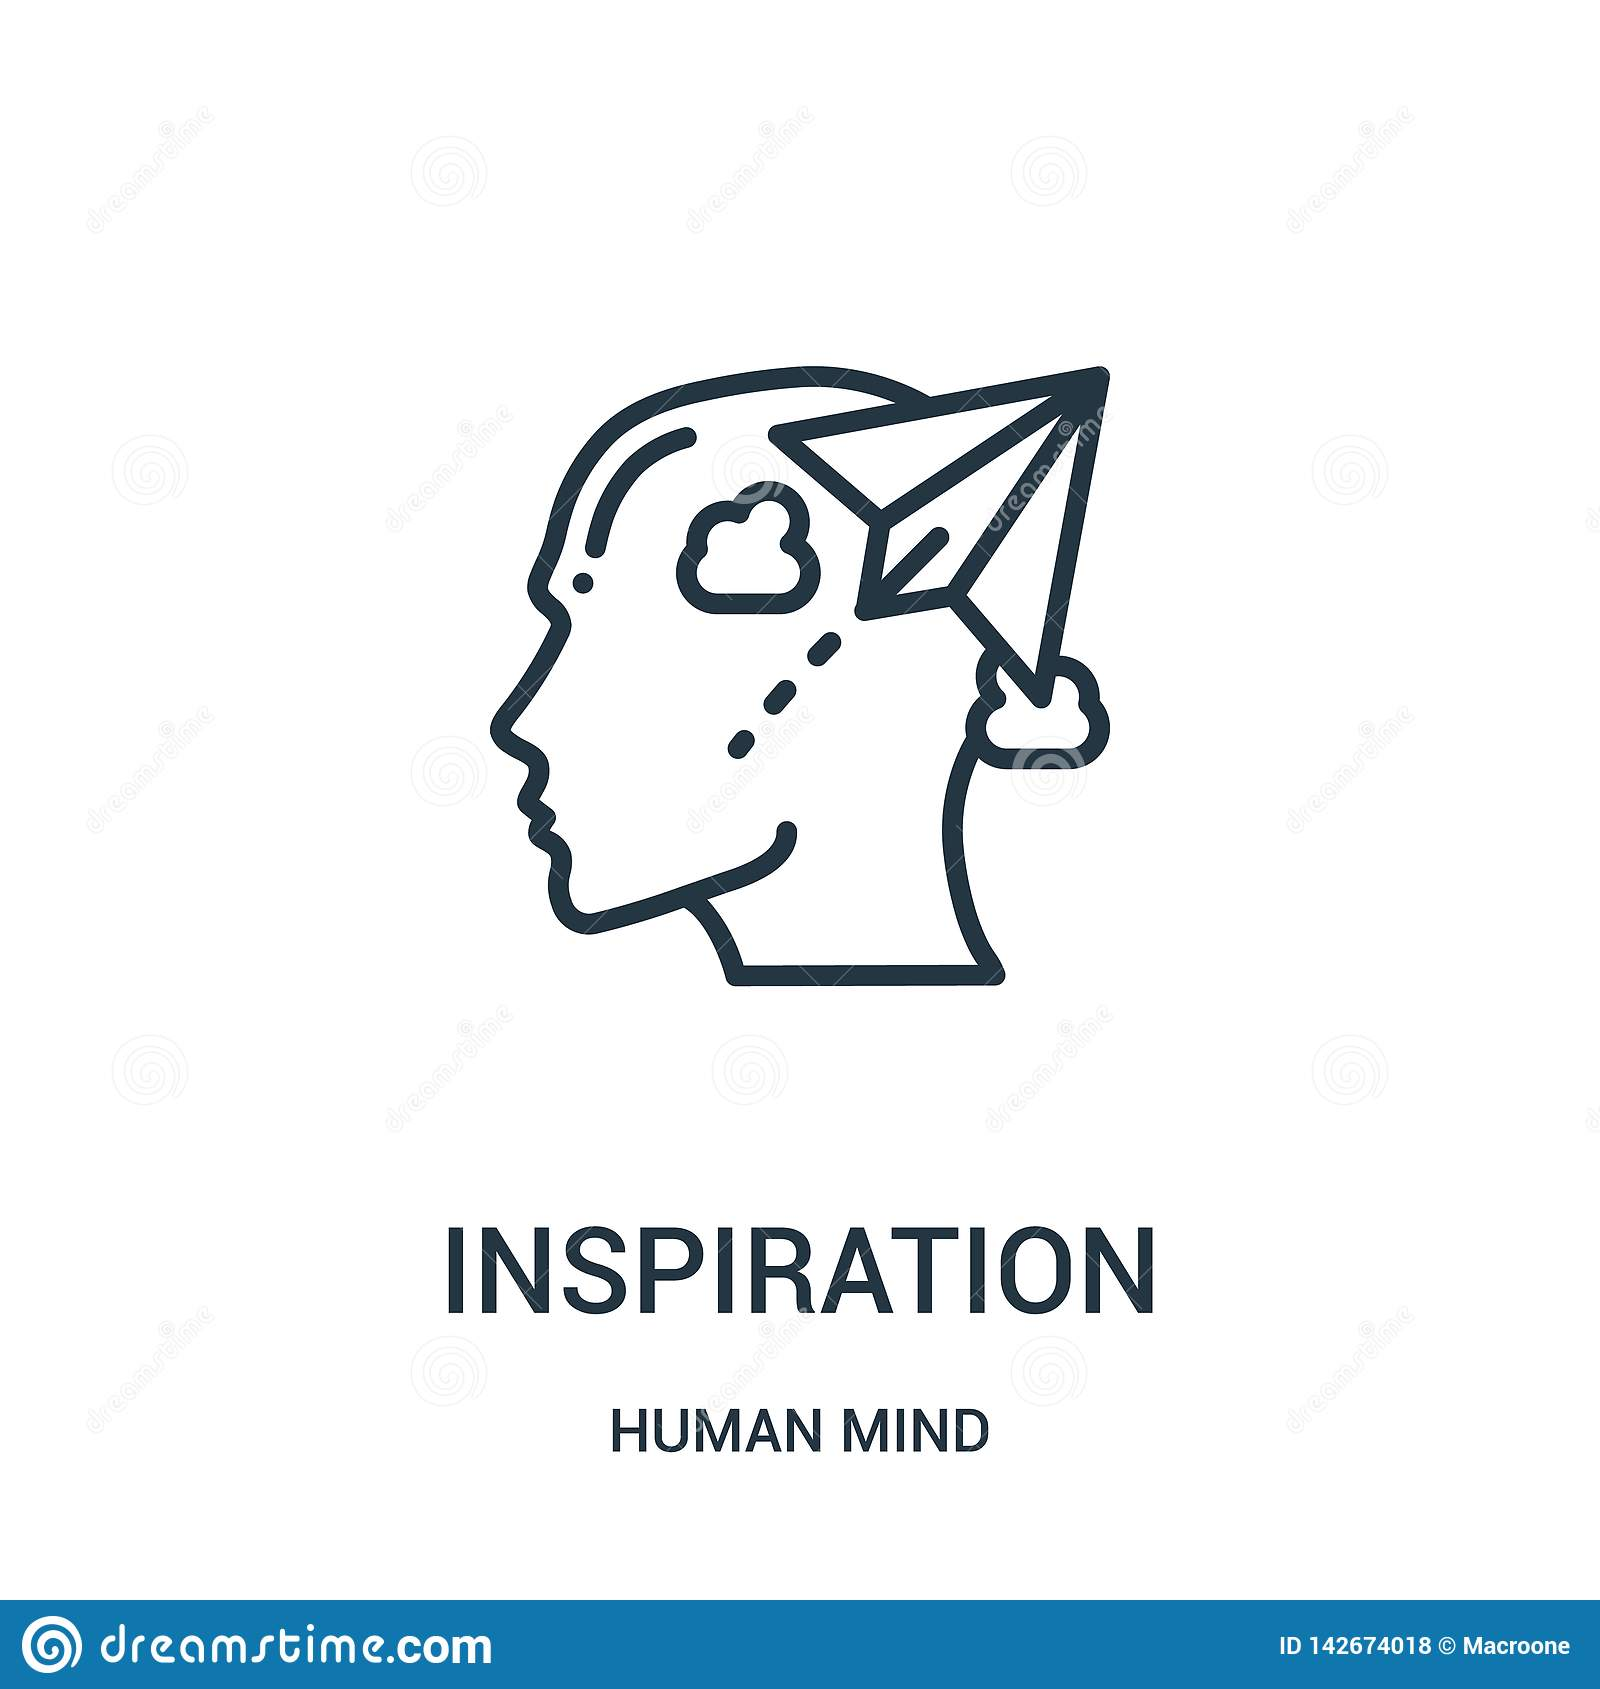 inspiration icon vector from human mind collection. Thin line inspiration outline icon vector illustration. Linear symbol for use